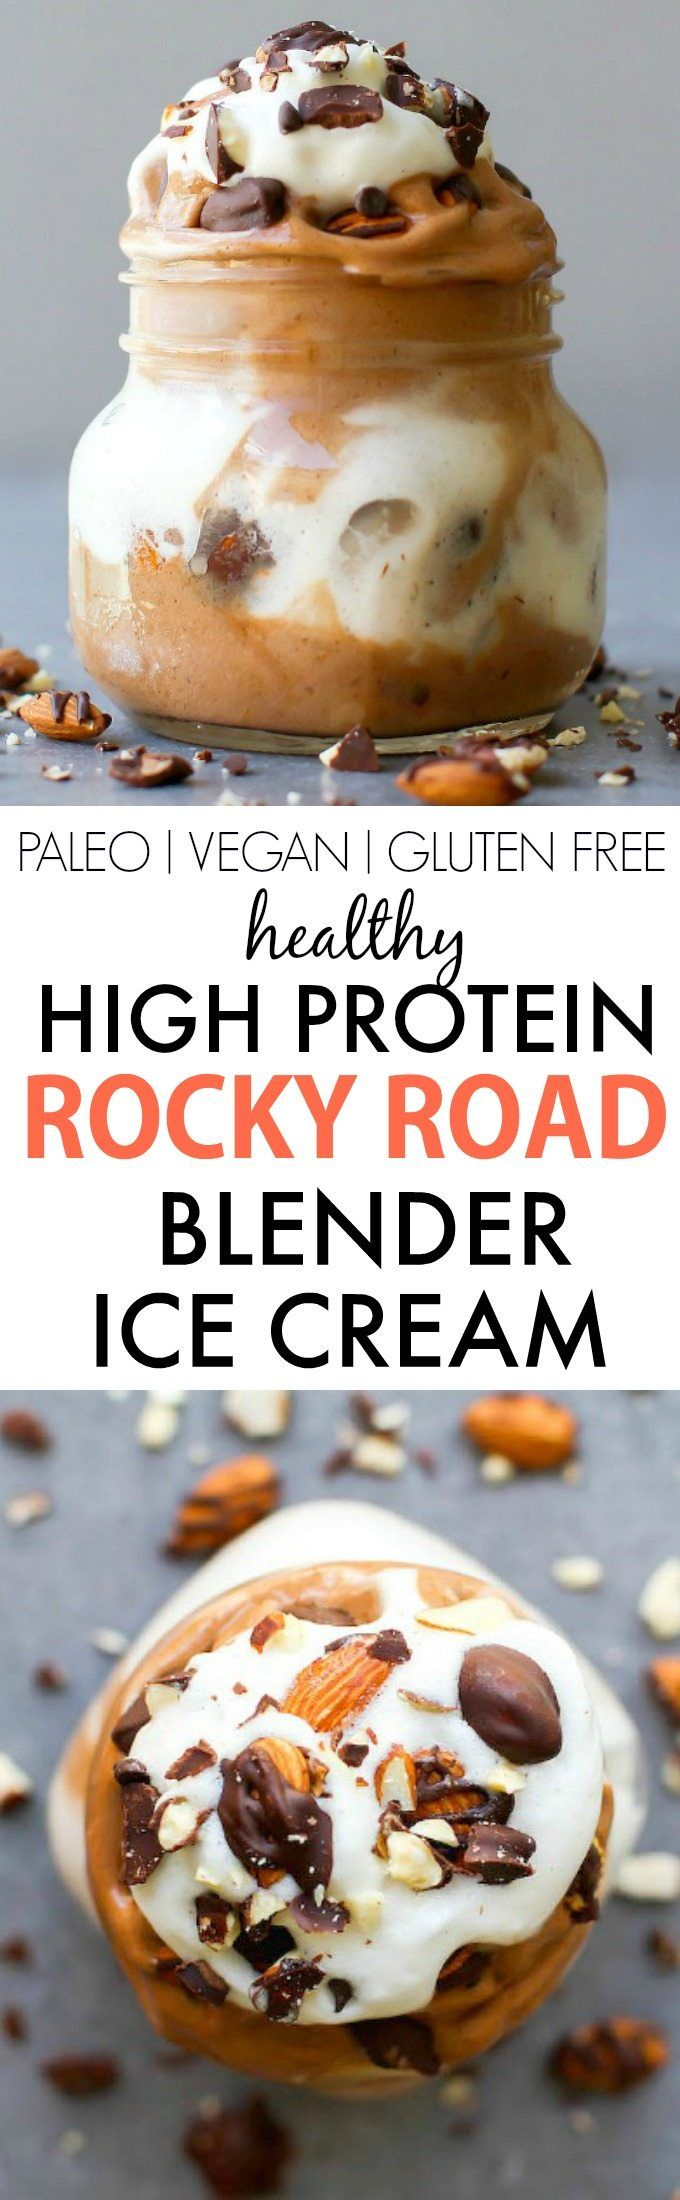 Healthy Rocky Road BLENDER Ice Cream- Smooth, thick and creamy and LOADED with protein, this simple, easy blender made ice cream (nice cream) has NO dairy, cream, sugar or nasties- An Aquafaba option too!{vegan, gluten free, paleo recipe}- thebigmansworld.com